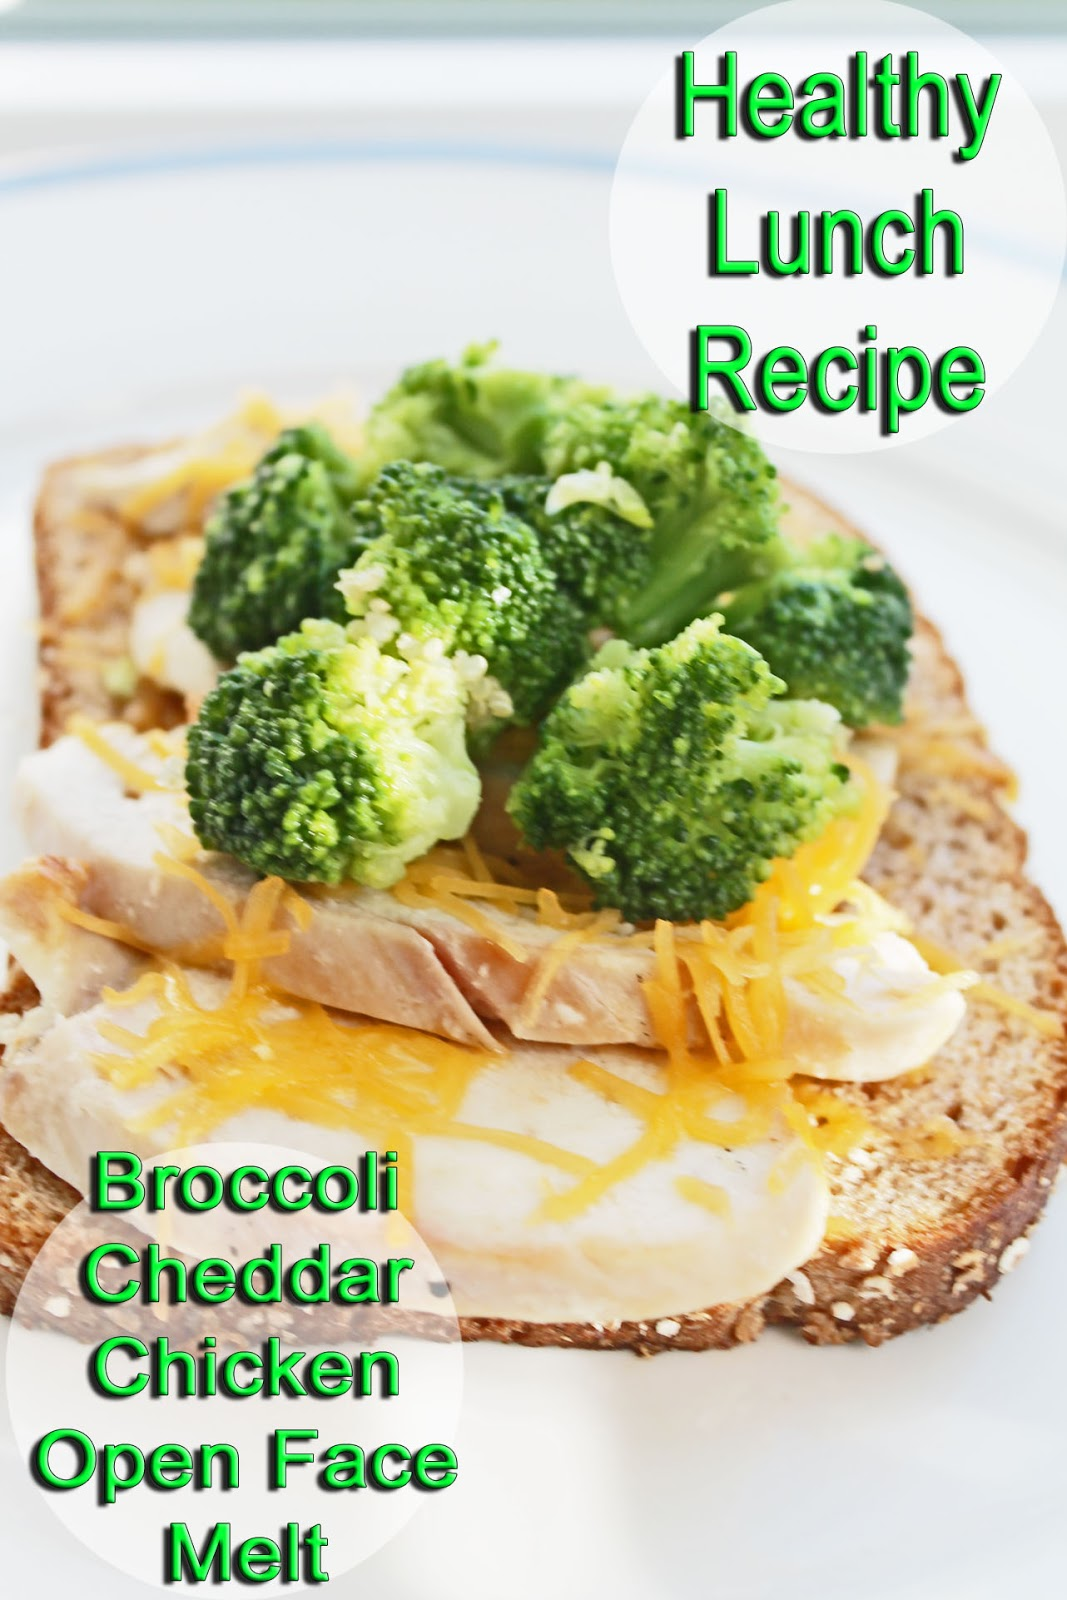 Healthy Lunch Recipe Broccoli Cheddar Chicken Open Face Melt Clean Eating